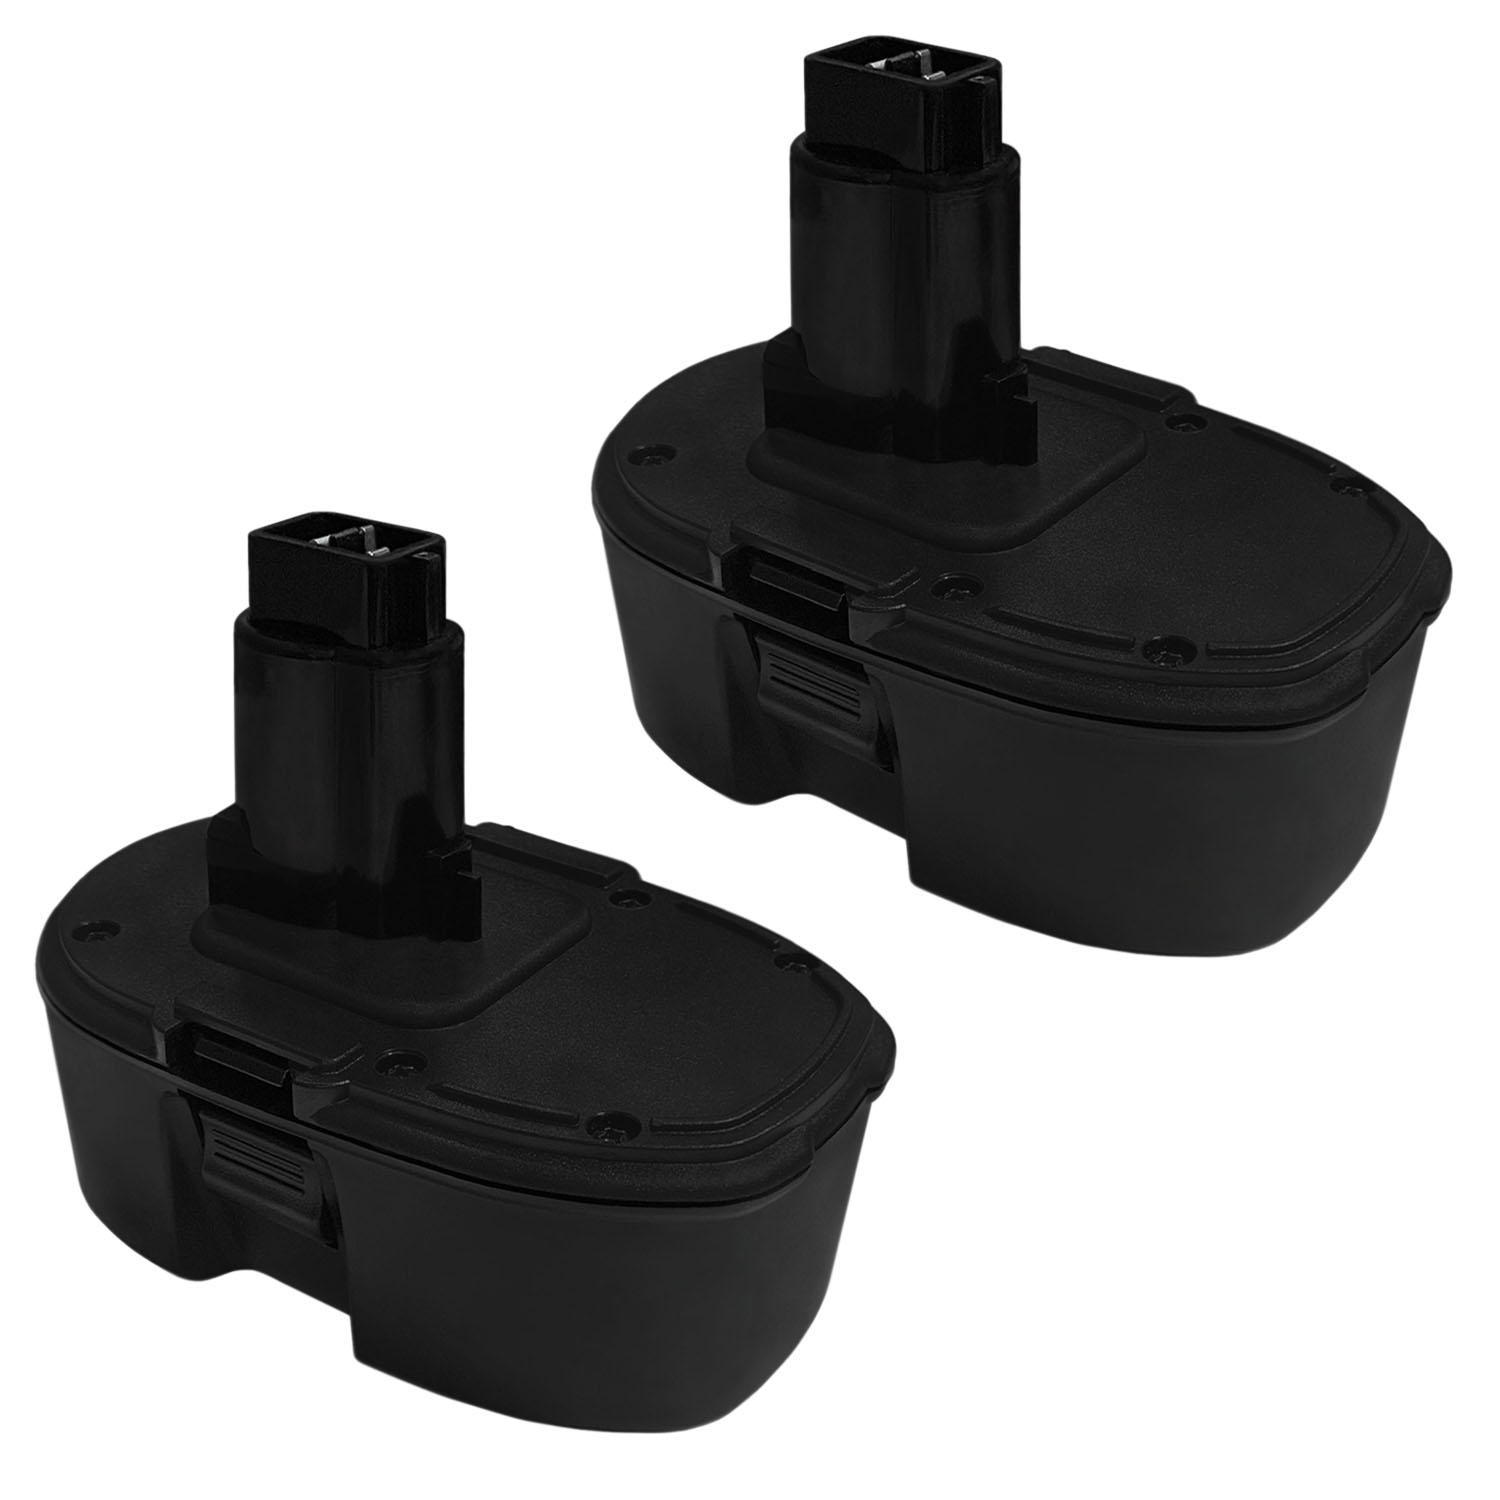 18V Ni-Cd  Replacement Battery for DE9095 DC9096 DW9095 - 2 PACK